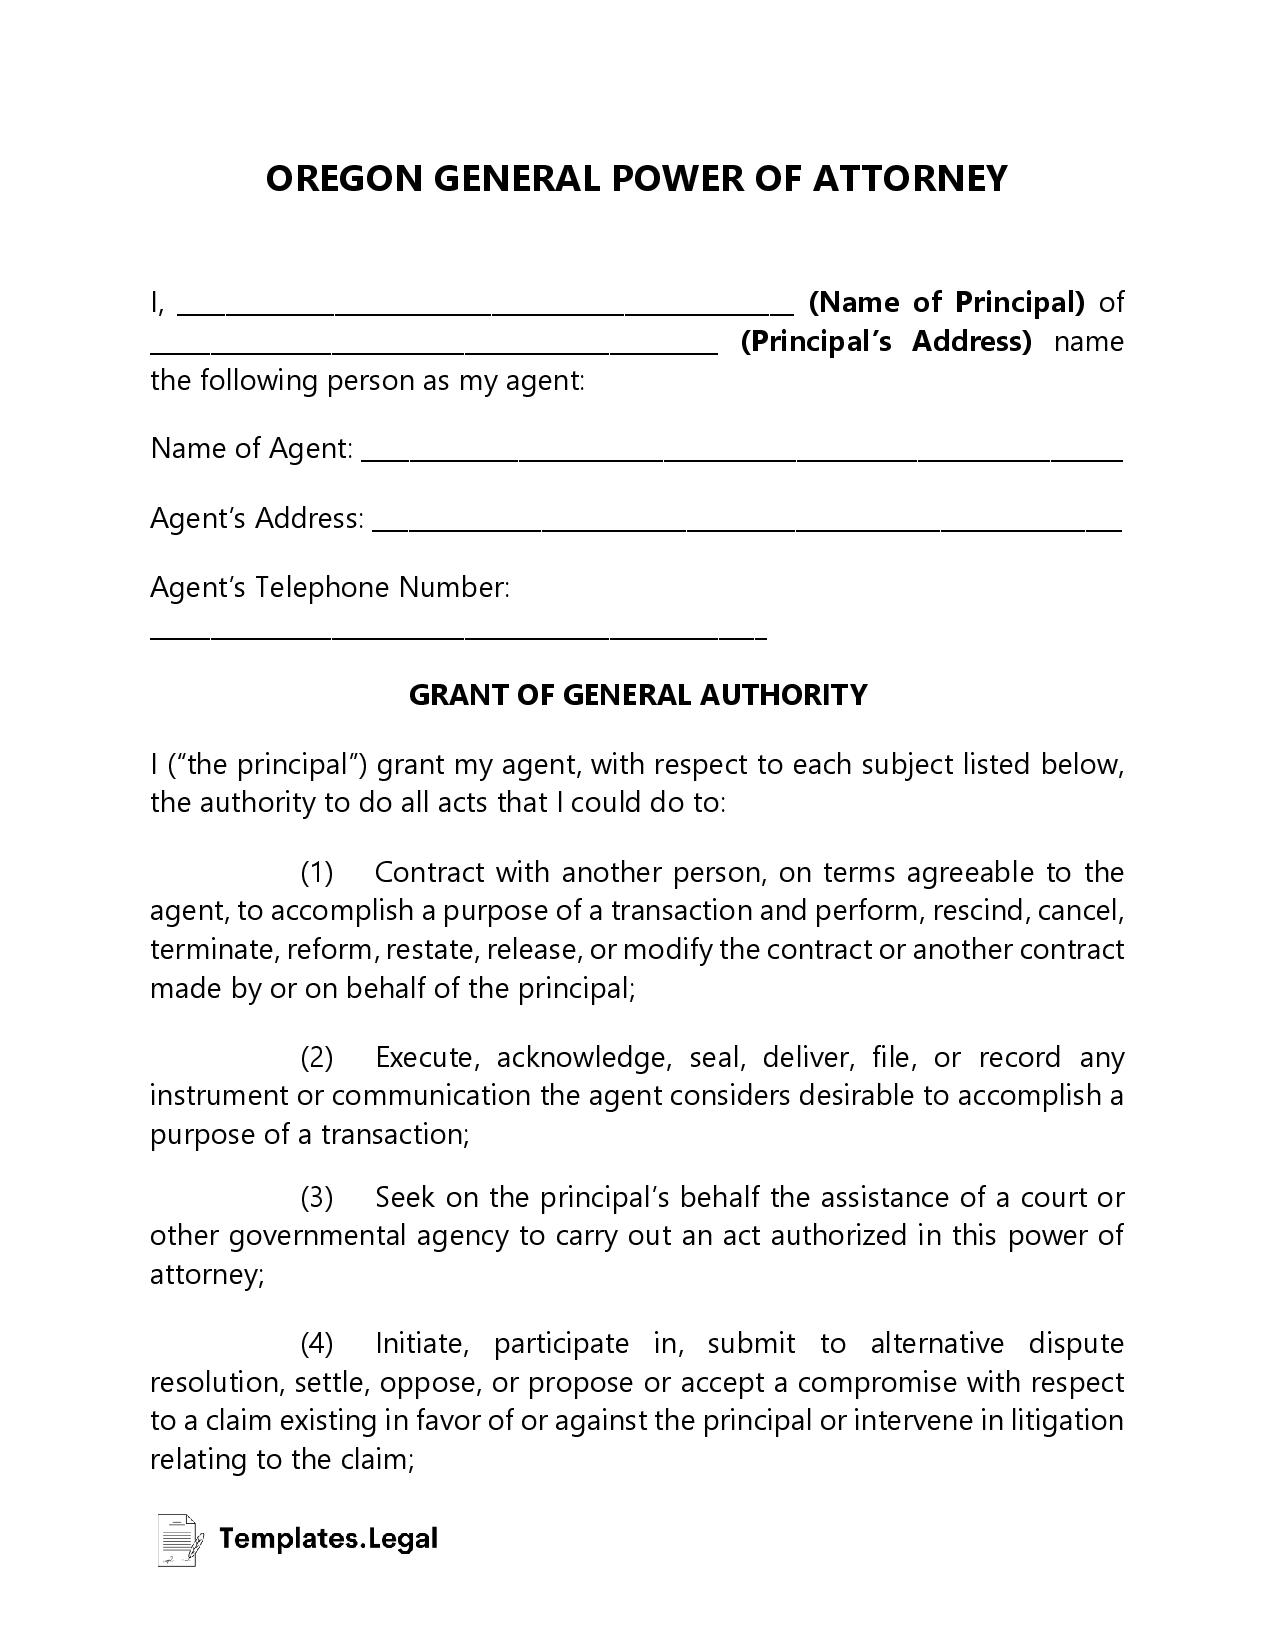 Oregon General Power of Attorney - Templates.Legal